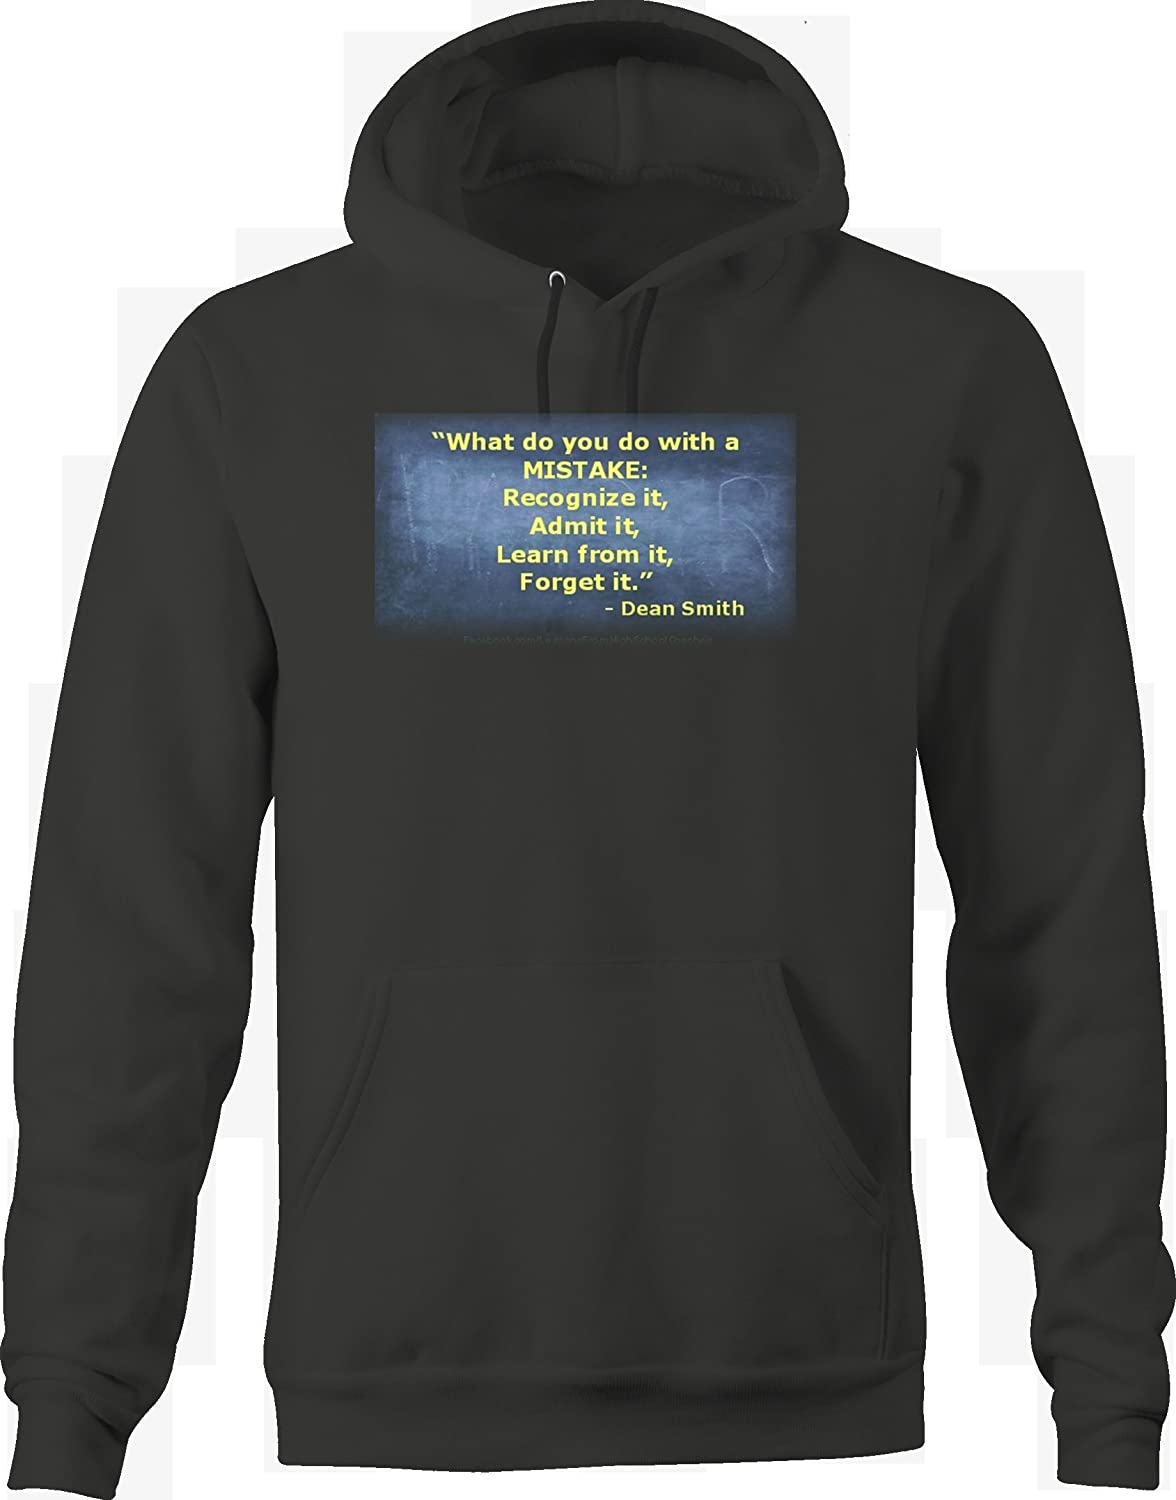 Dean Smith Quote Mistake Recognize Learn Admit Forget it Hoodie for Men